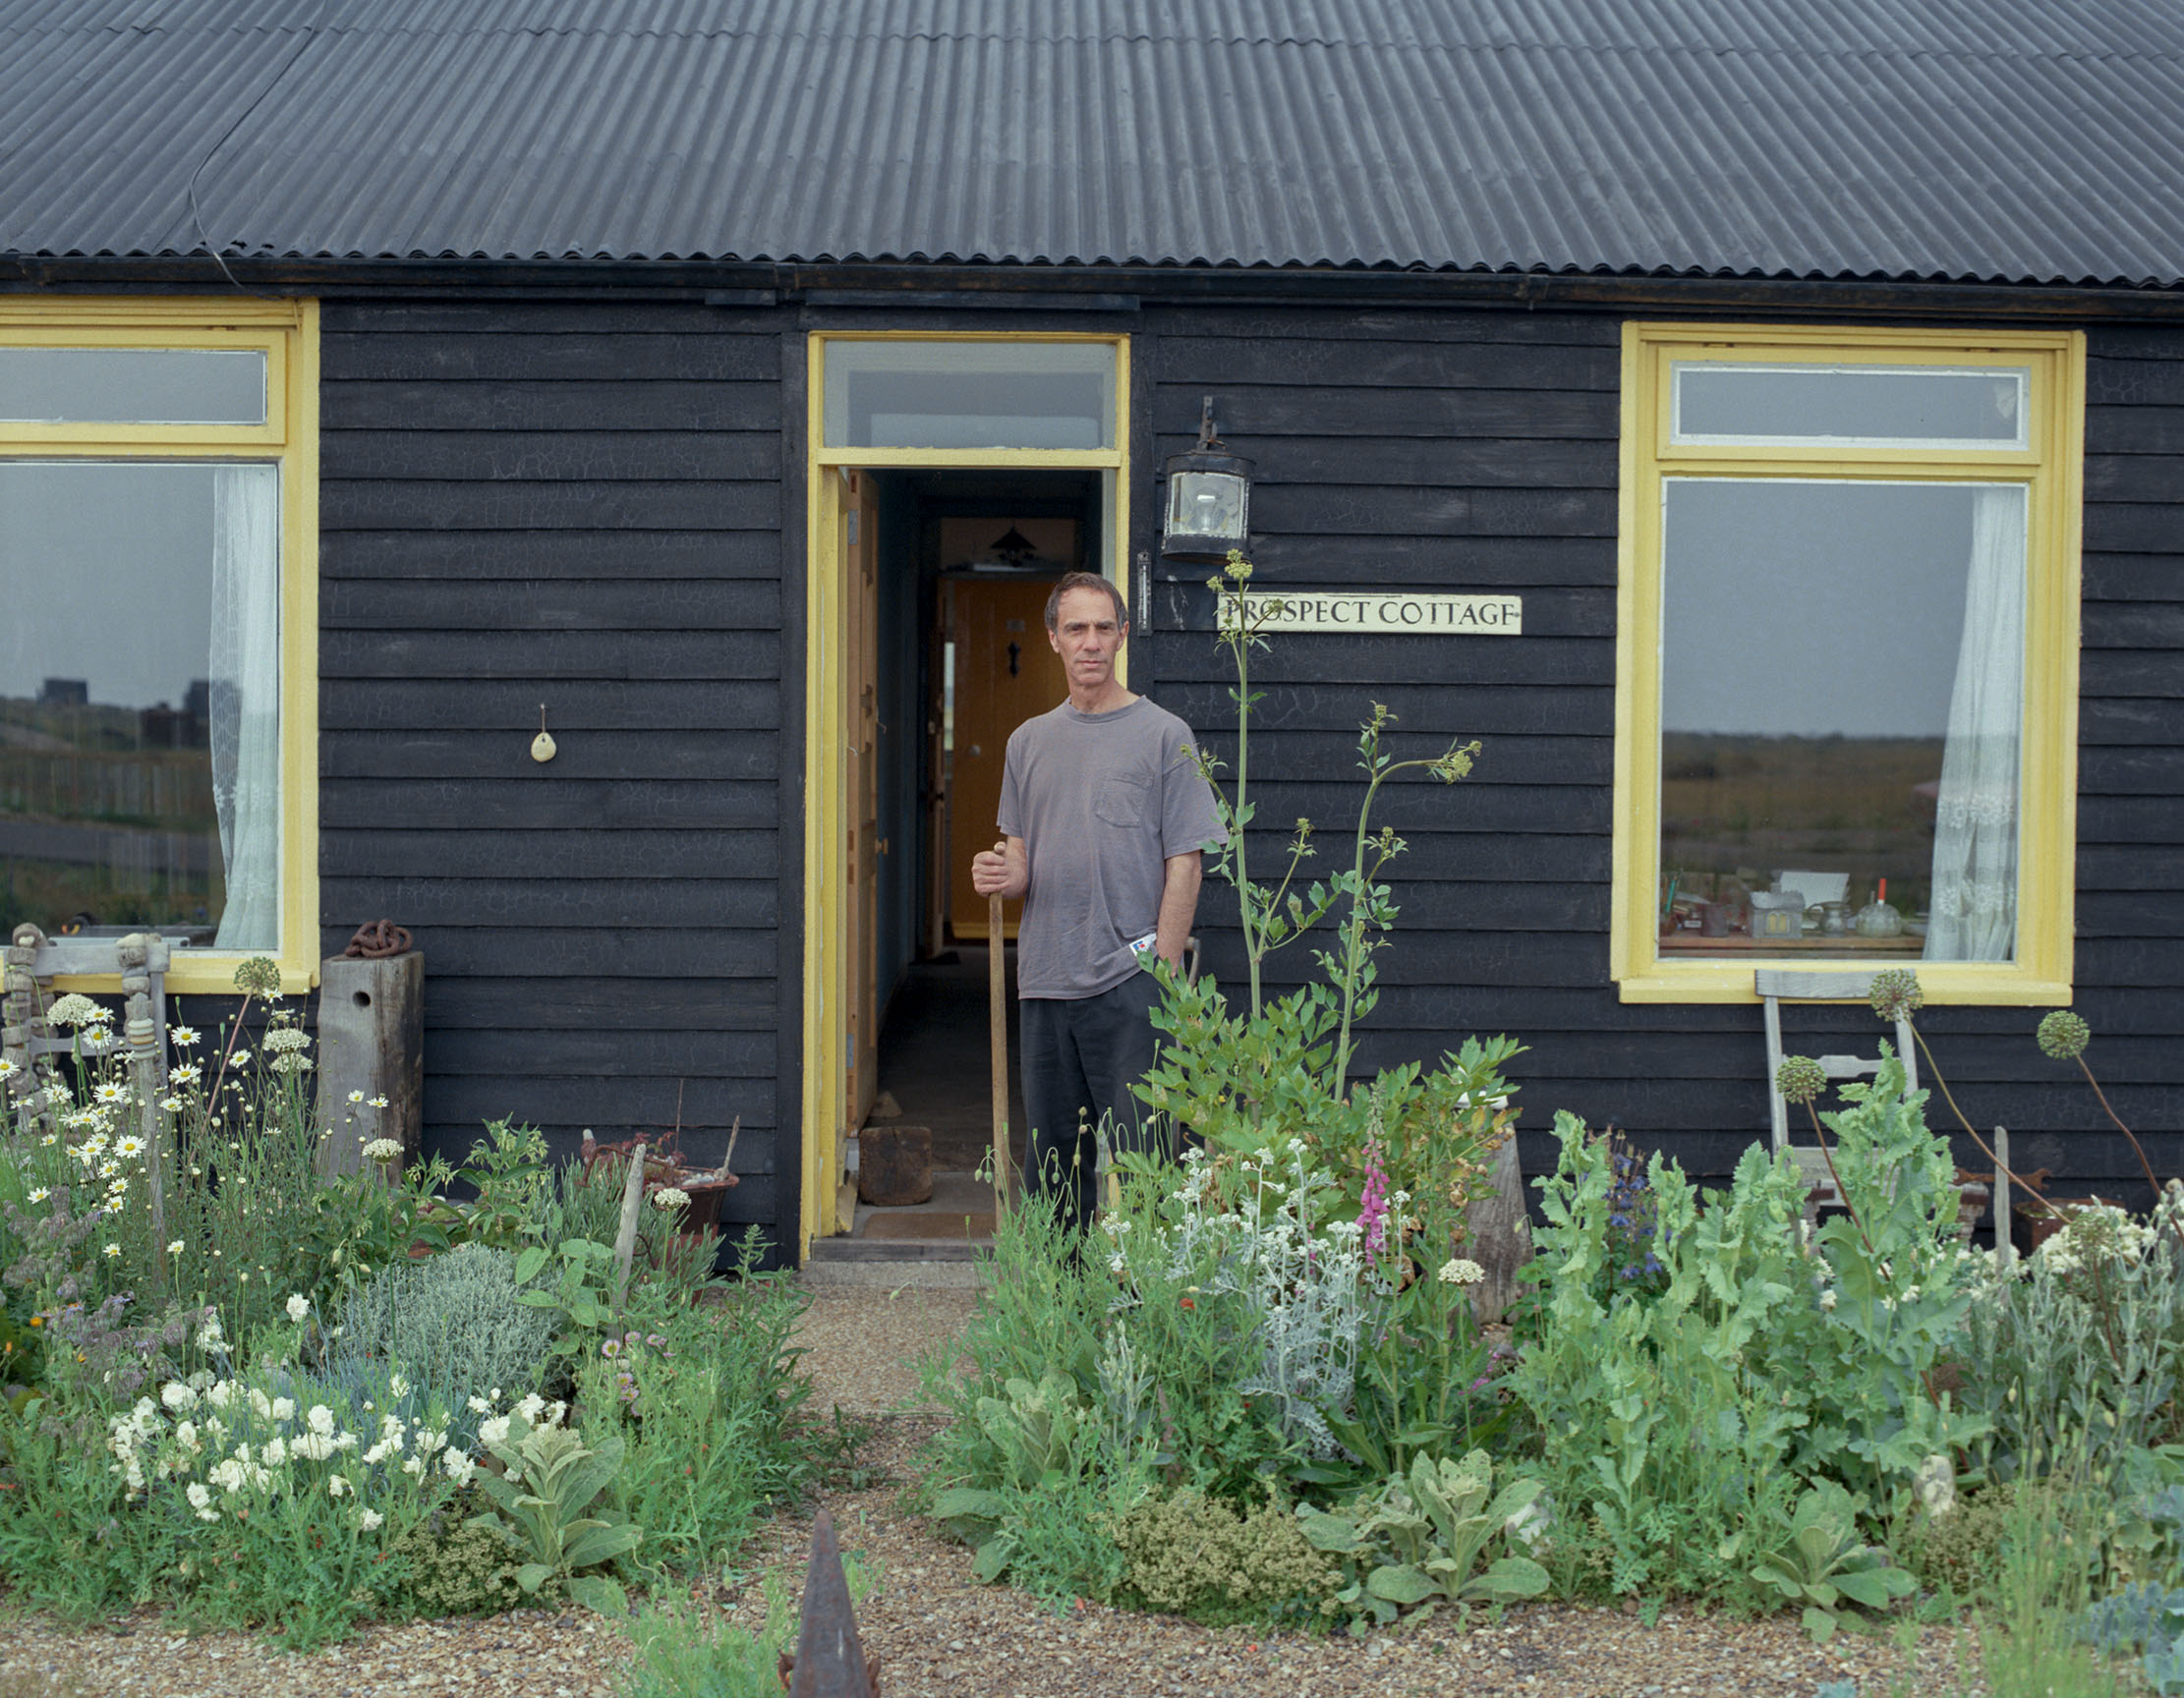 £3.5 million campaign launched to save Derek Jarman's iconic Prospect Cottage for the nation